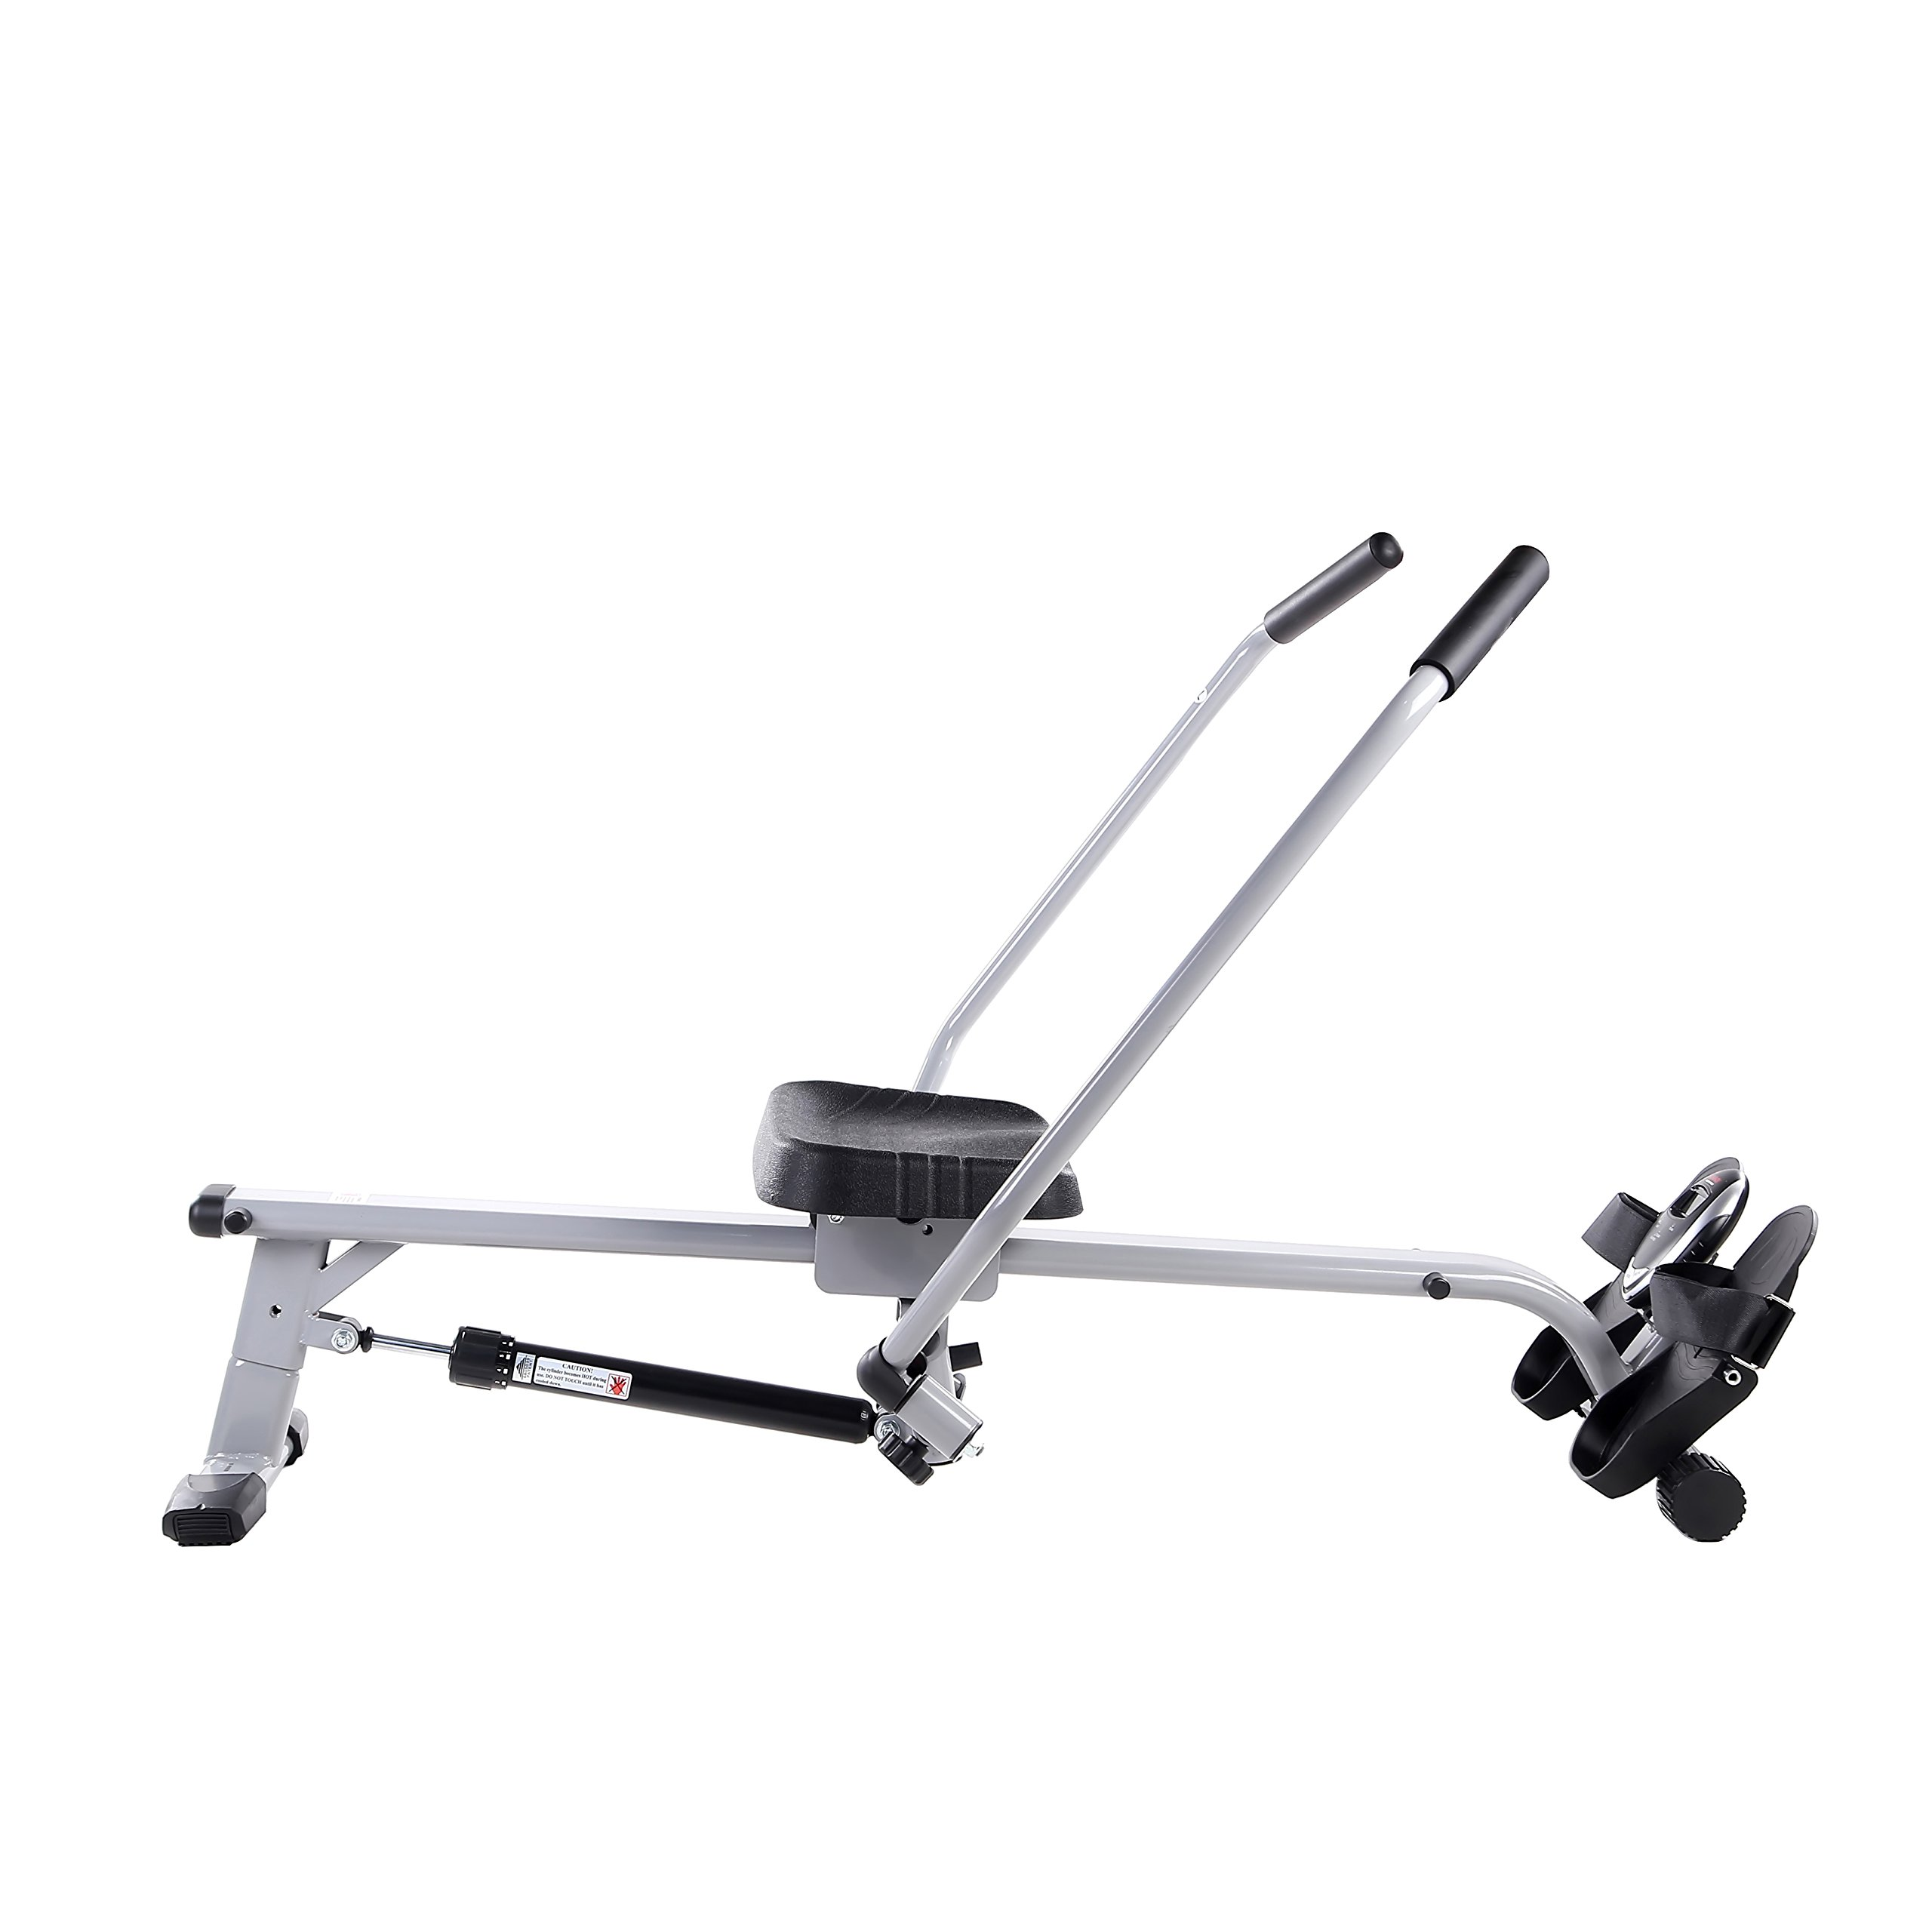 Sunny Health & Fitness SF-RW5639 Full Motion Rowing Machine Rower w/ 350 lb Weight Capacity and LCD Monitor by Sunny Health & Fitness (Image #12)